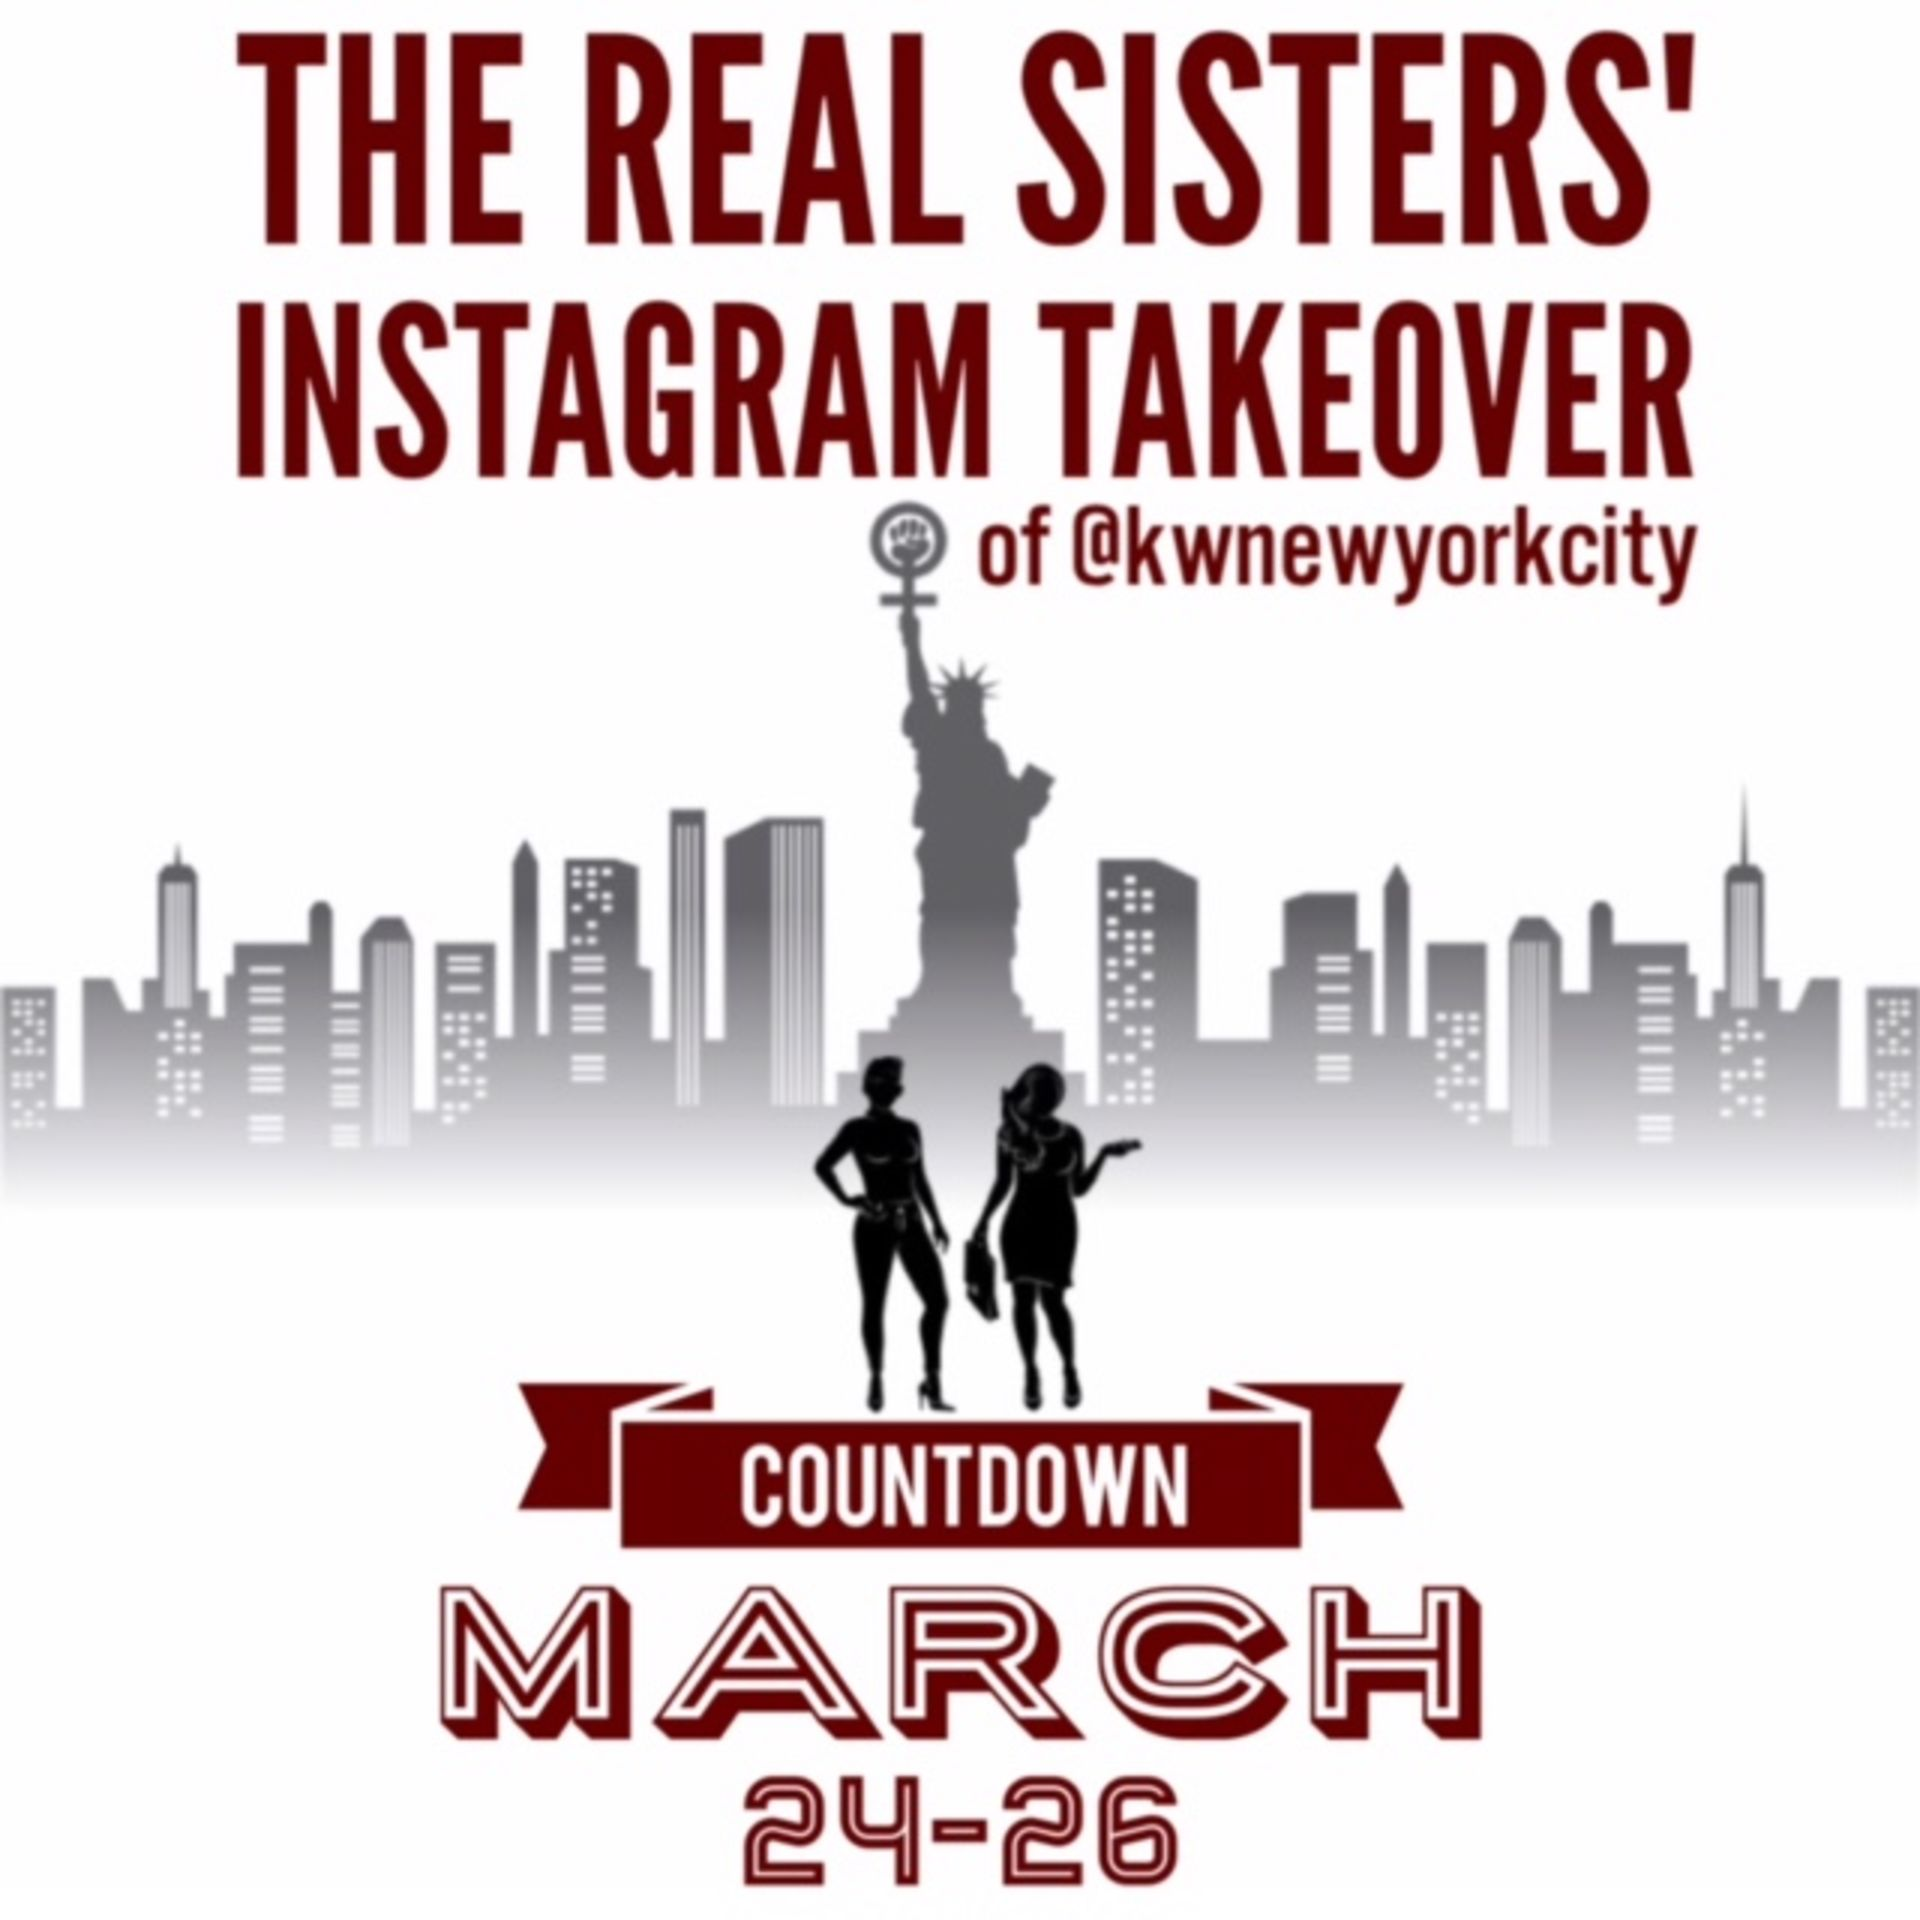 ANNOUNCEMENT: The Real Sisters Takeover